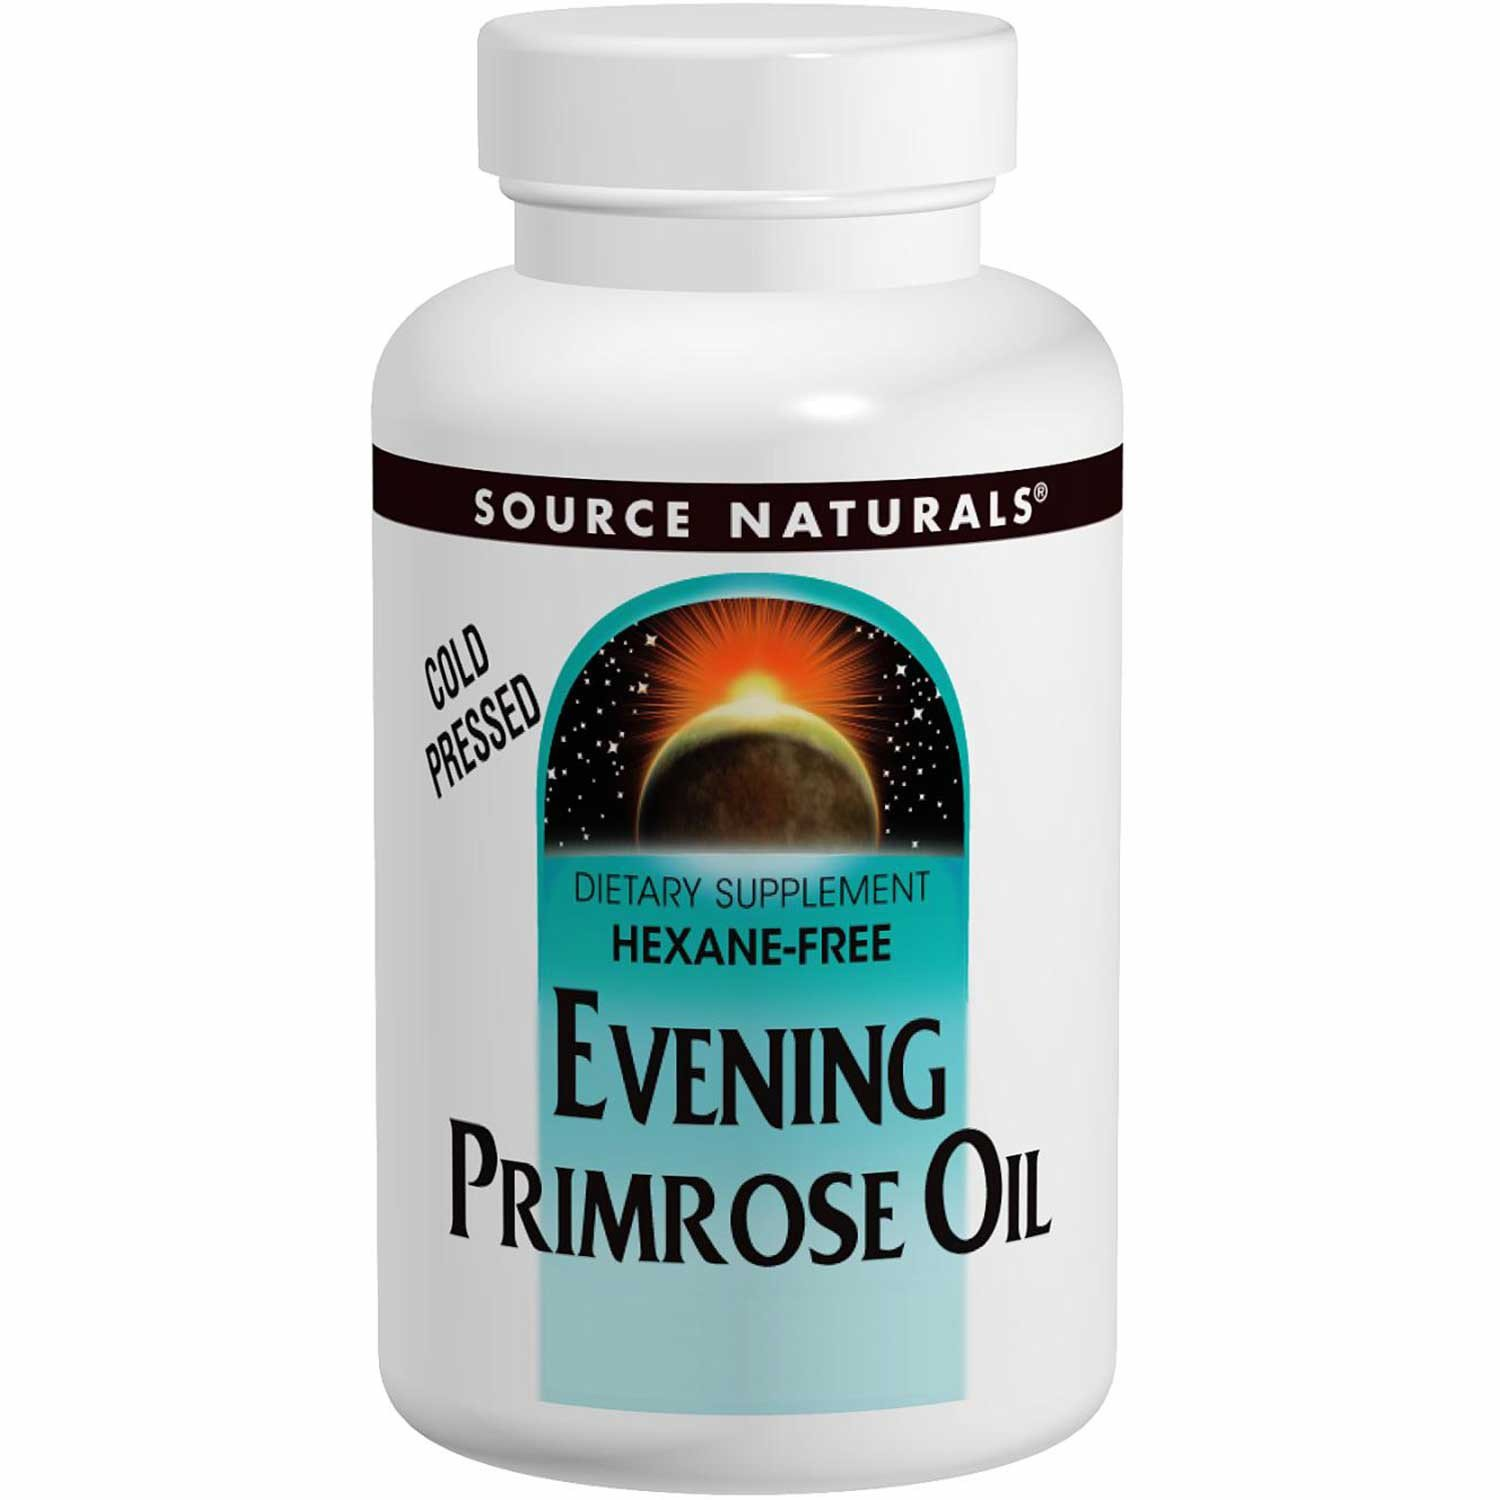 Source Naturals Evening Primrose Oil (500 mg), 90 sgls